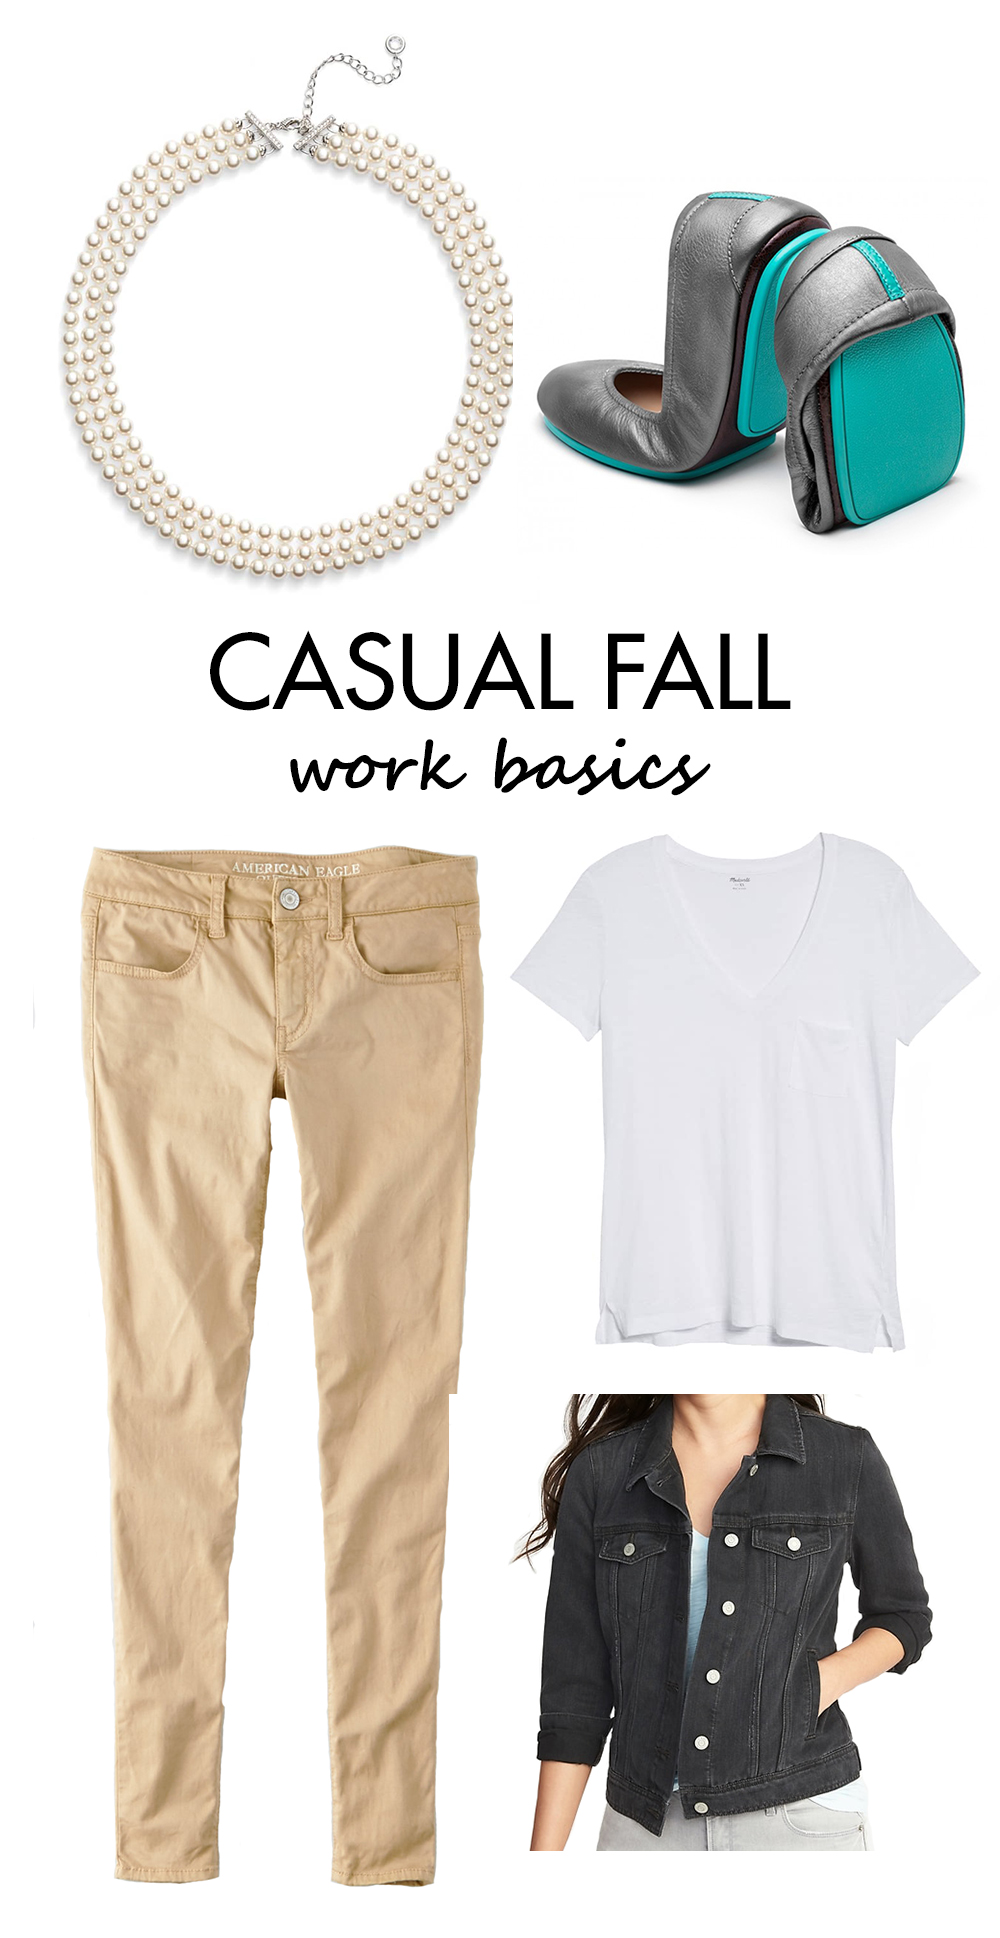 Casual Fall Outfits Inspiration - Work Basics | https://www.roseclearfield.com